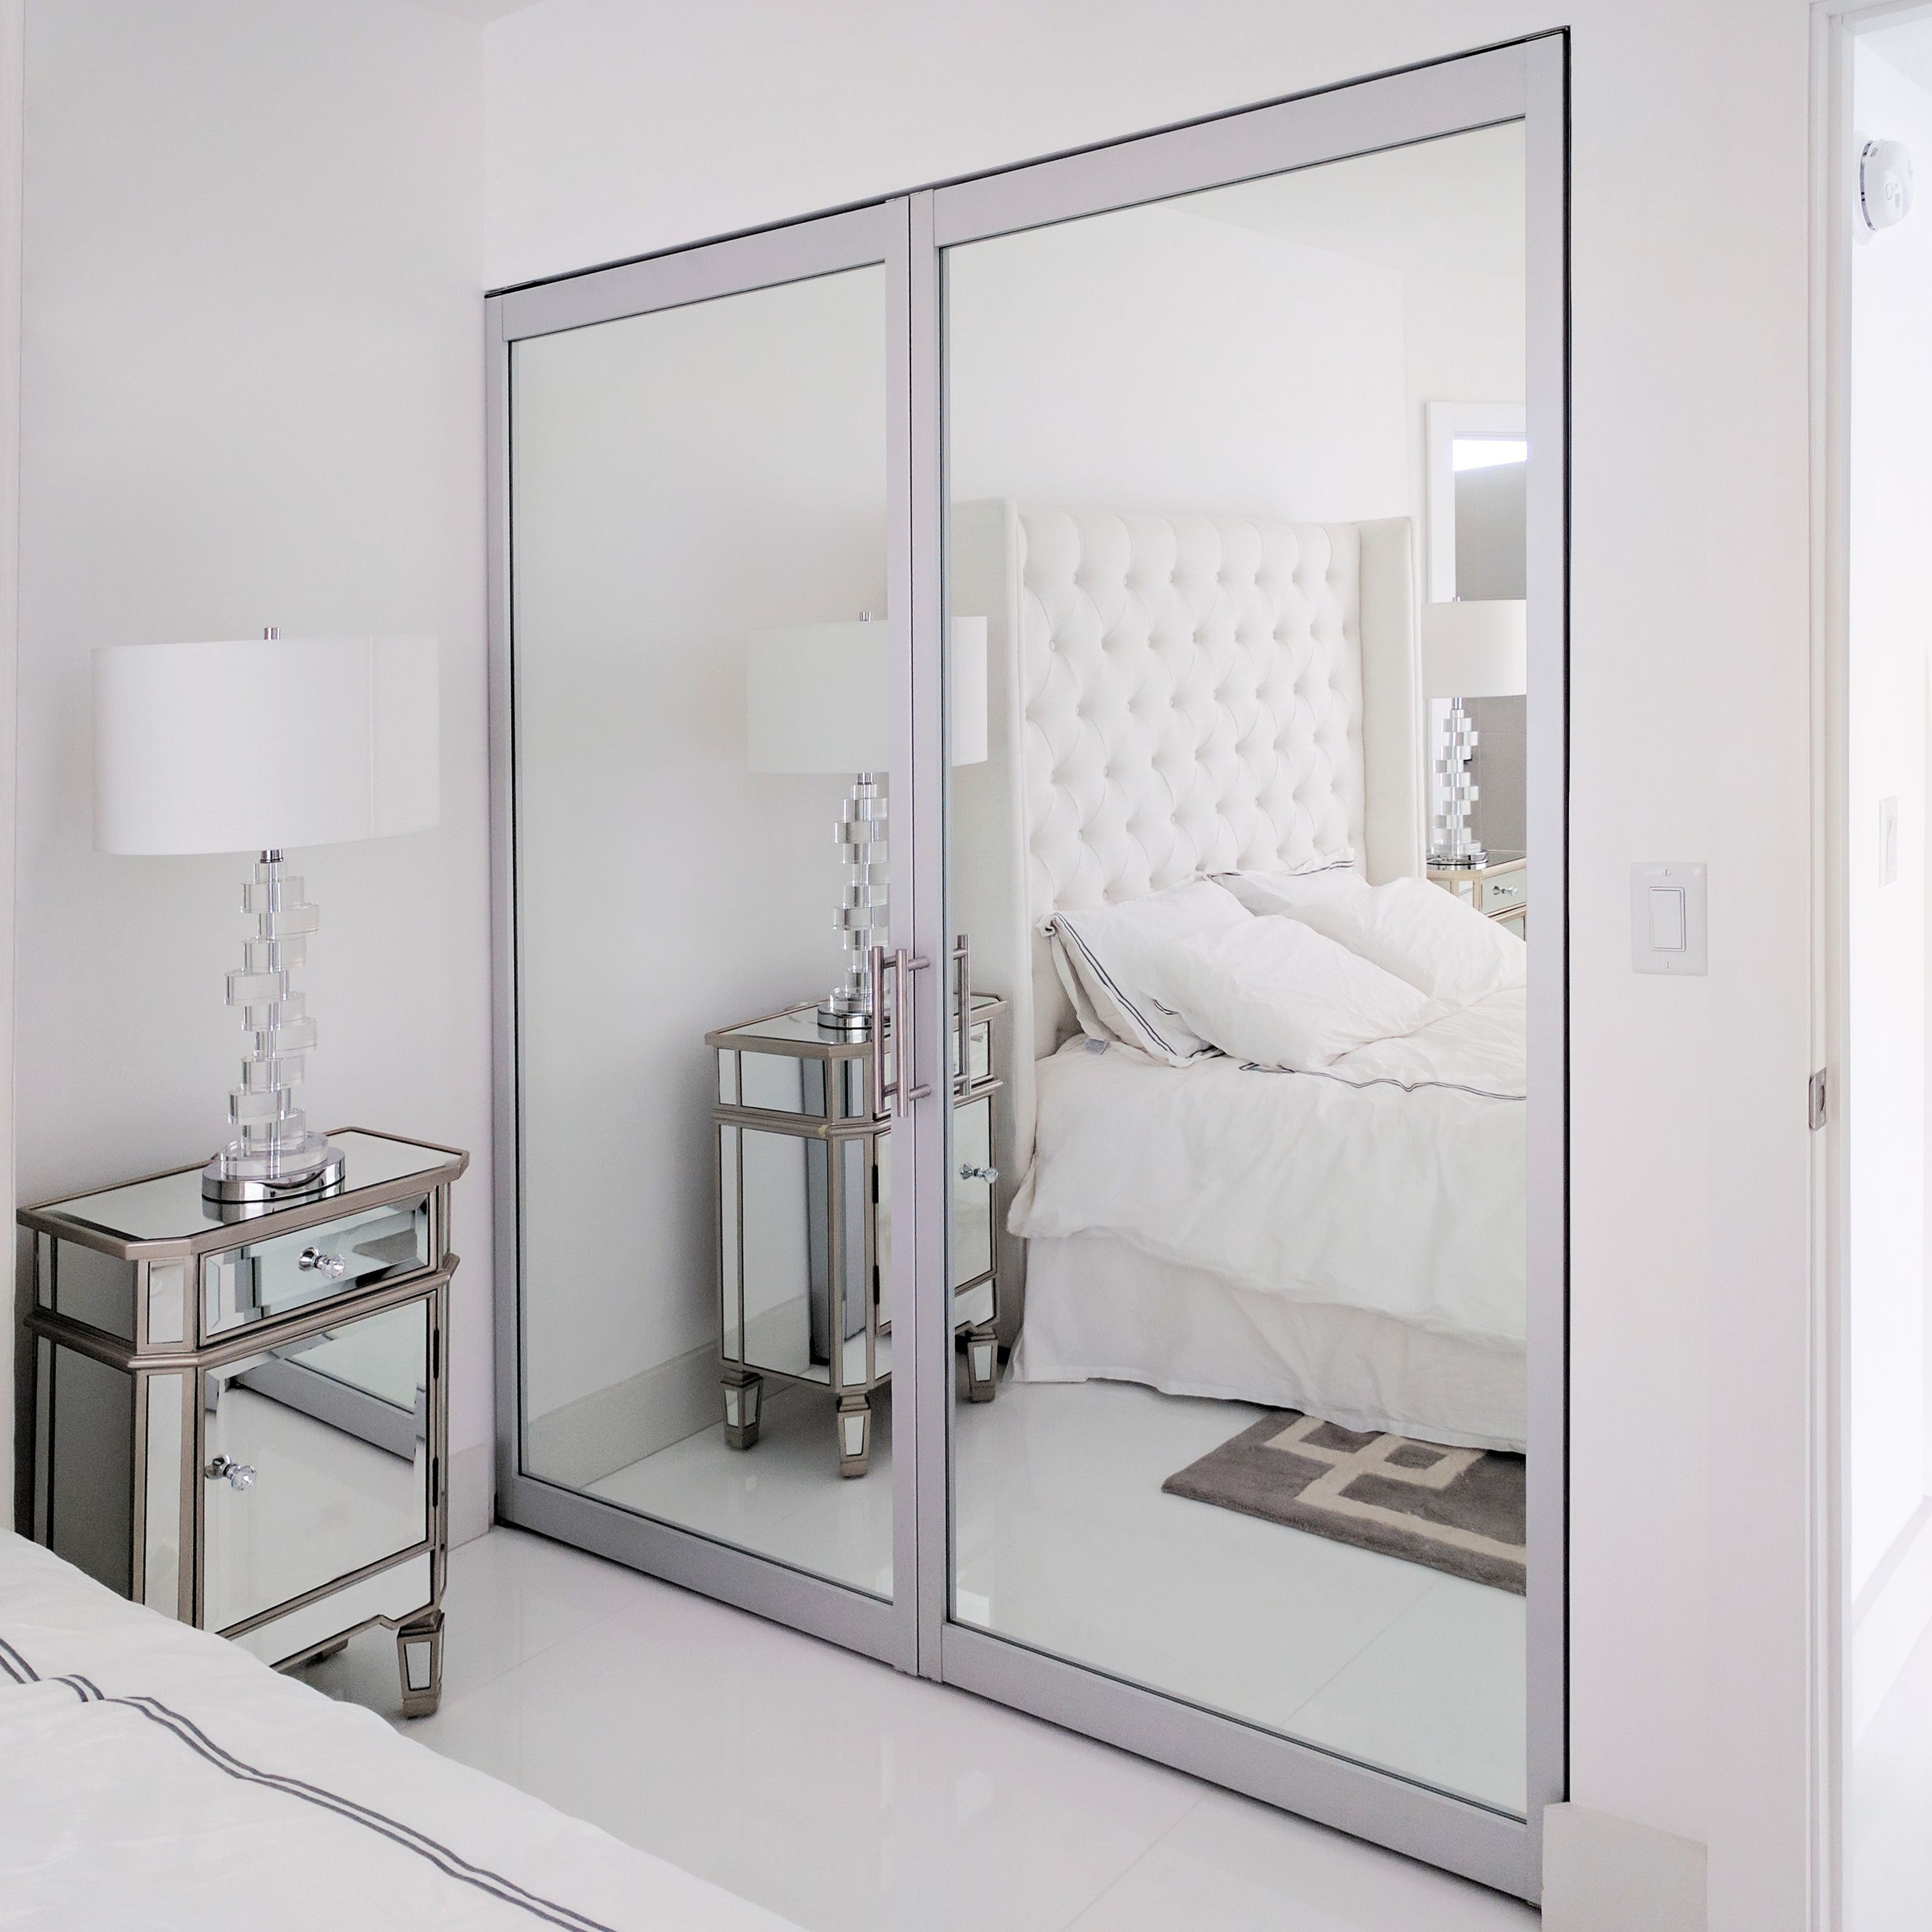 Mirrored Closet Door Mirror Closet Doors Mirrored Wardrobe Doors Sliding Mirror Closet Doors